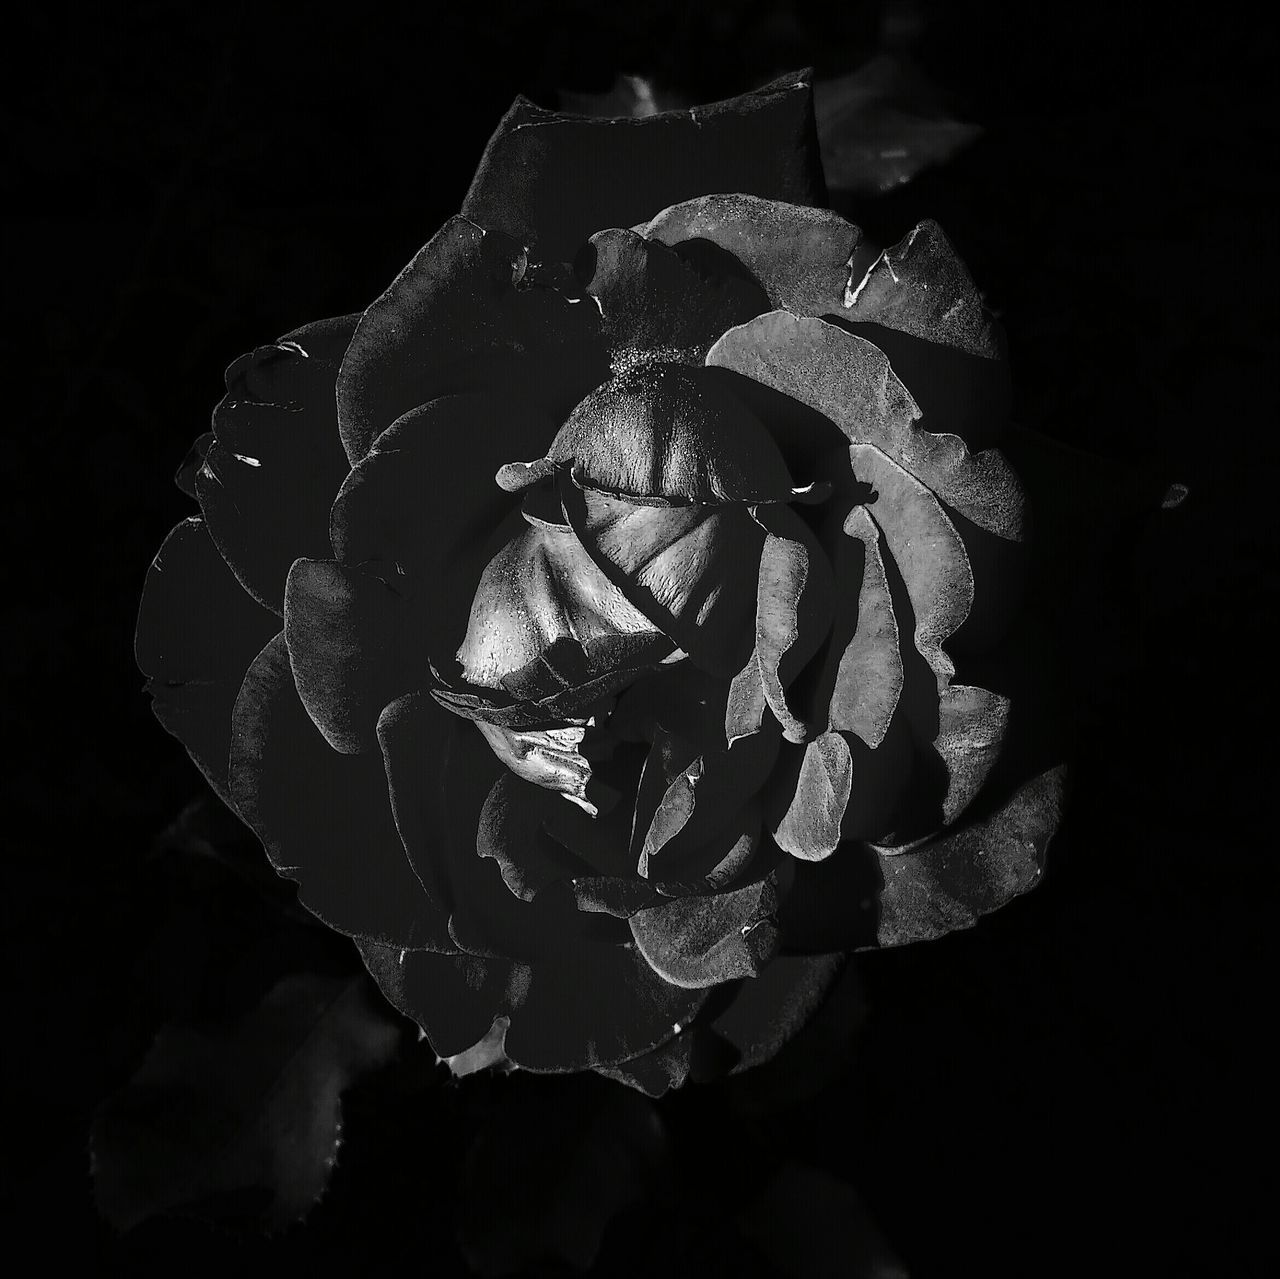 flower, petal, rose - flower, flower head, beauty in nature, nature, fragility, freshness, growth, no people, black background, plant, close-up, blooming, studio shot, night, rose petals, outdoors